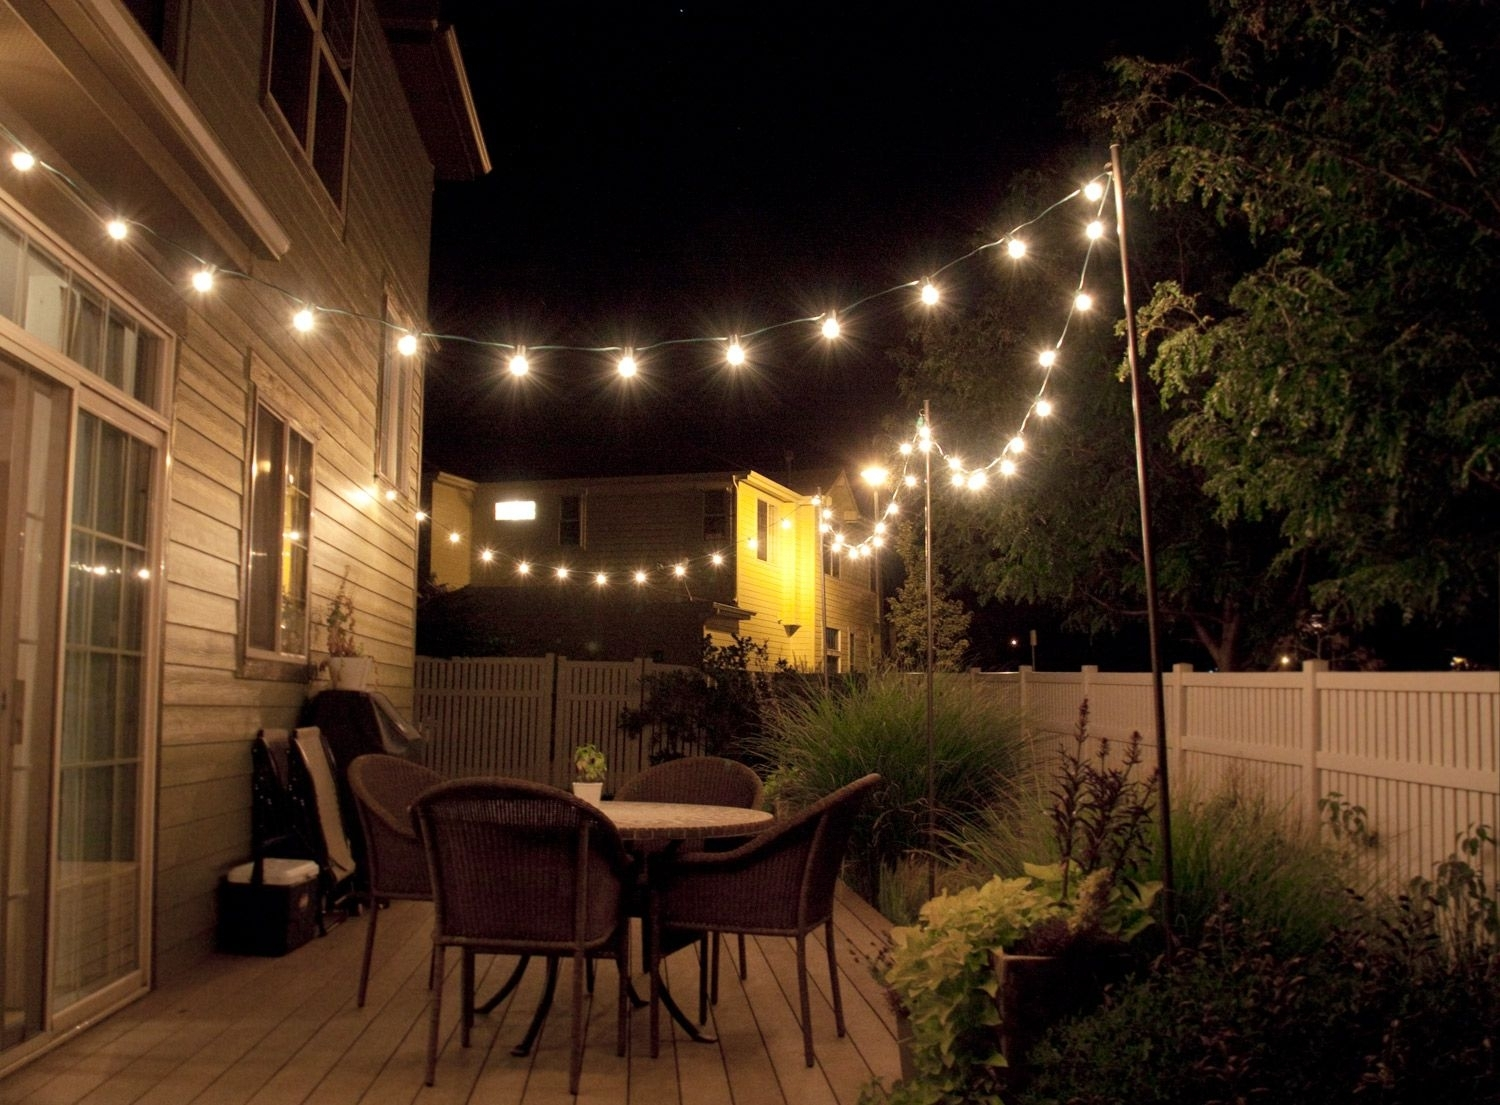 How To Make Inexpensive Poles To Hang String Lights On – Café Style Pertaining To Solar Hanging Outdoor Patio Lights (#6 of 15)